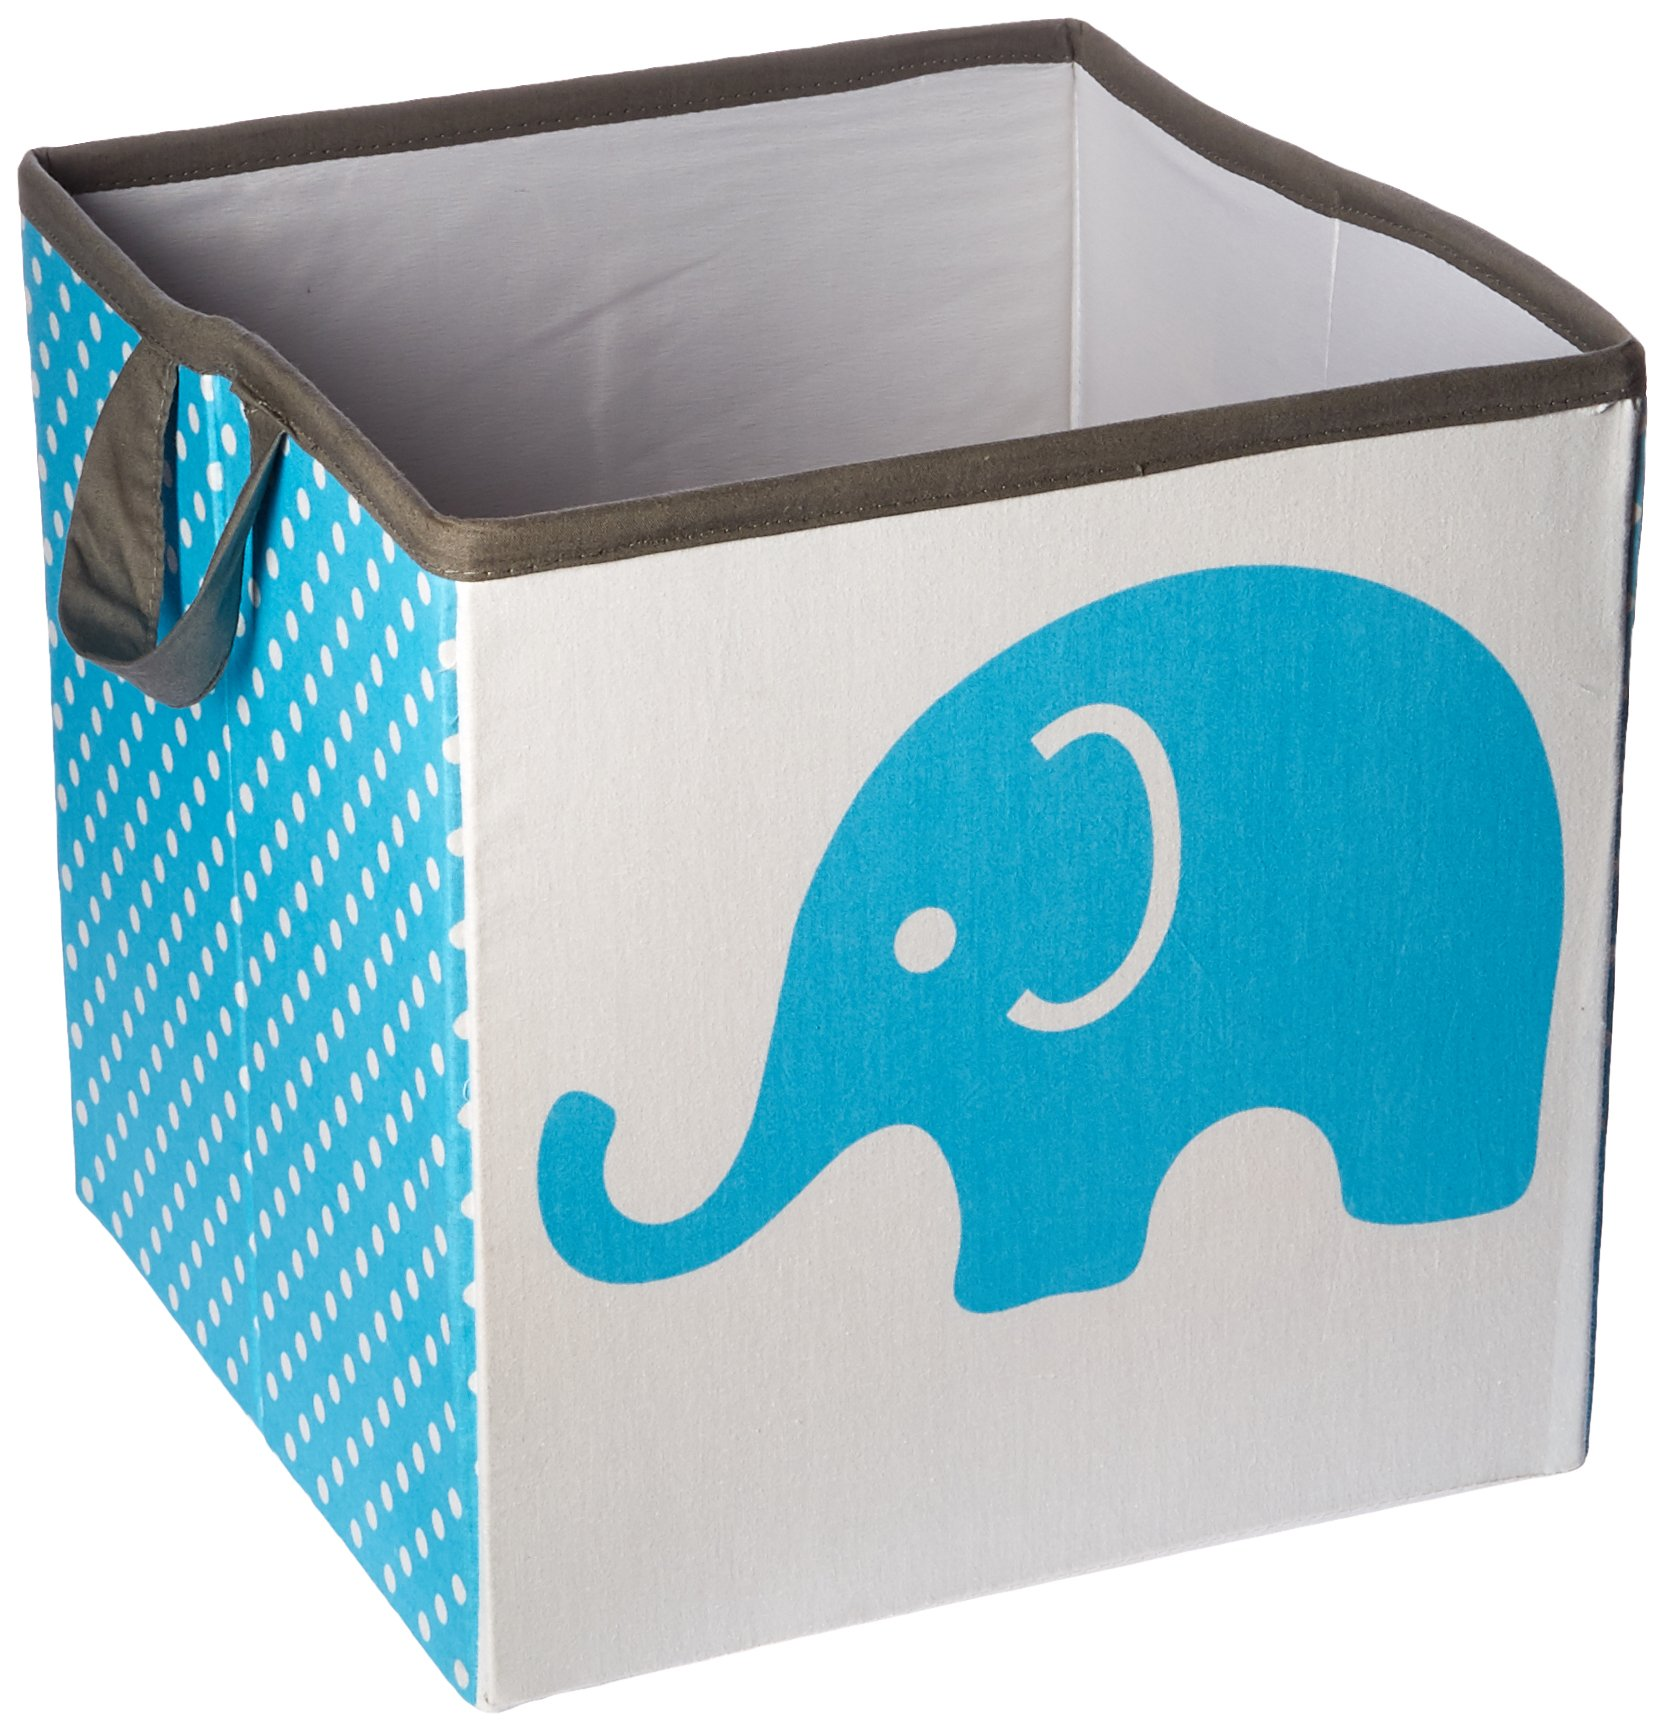 Bacati Elephants Storage Tote Basket, Aqua/Lime/Grey, Small